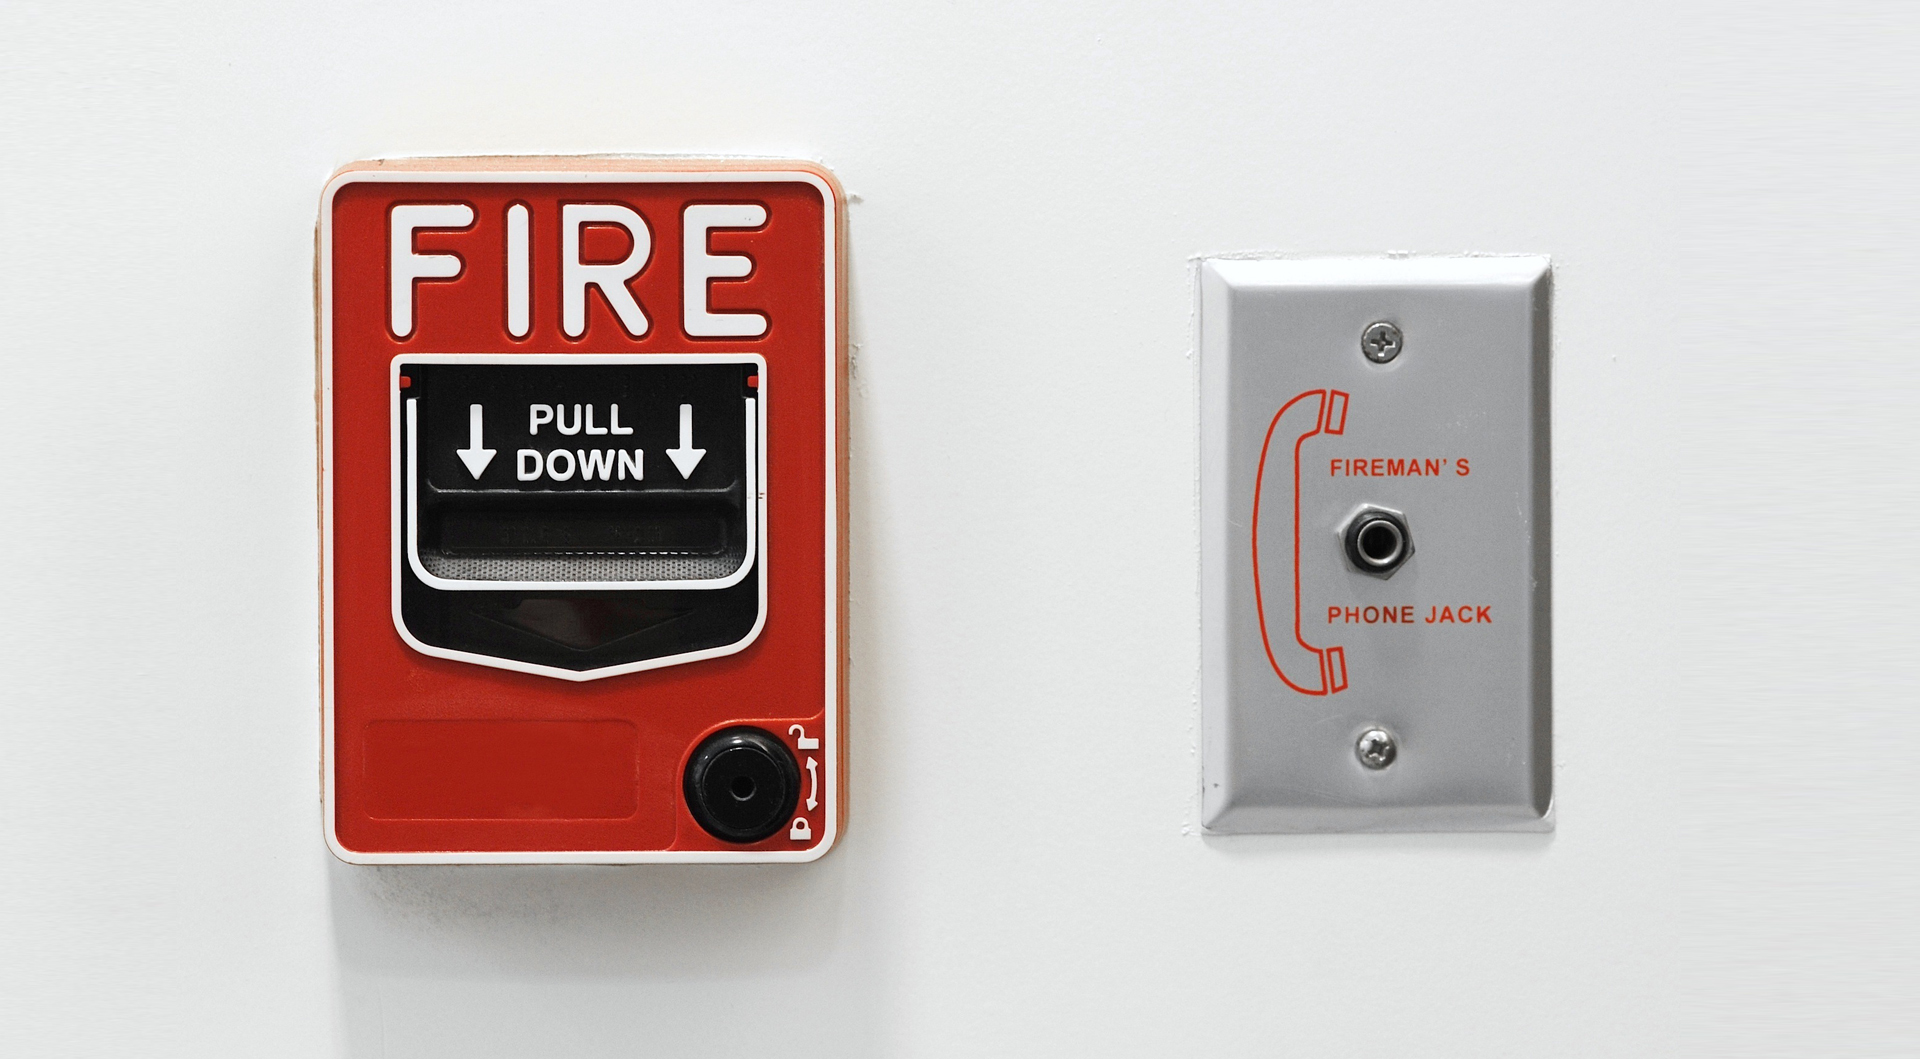 Fire Alarm Contractor of Choice